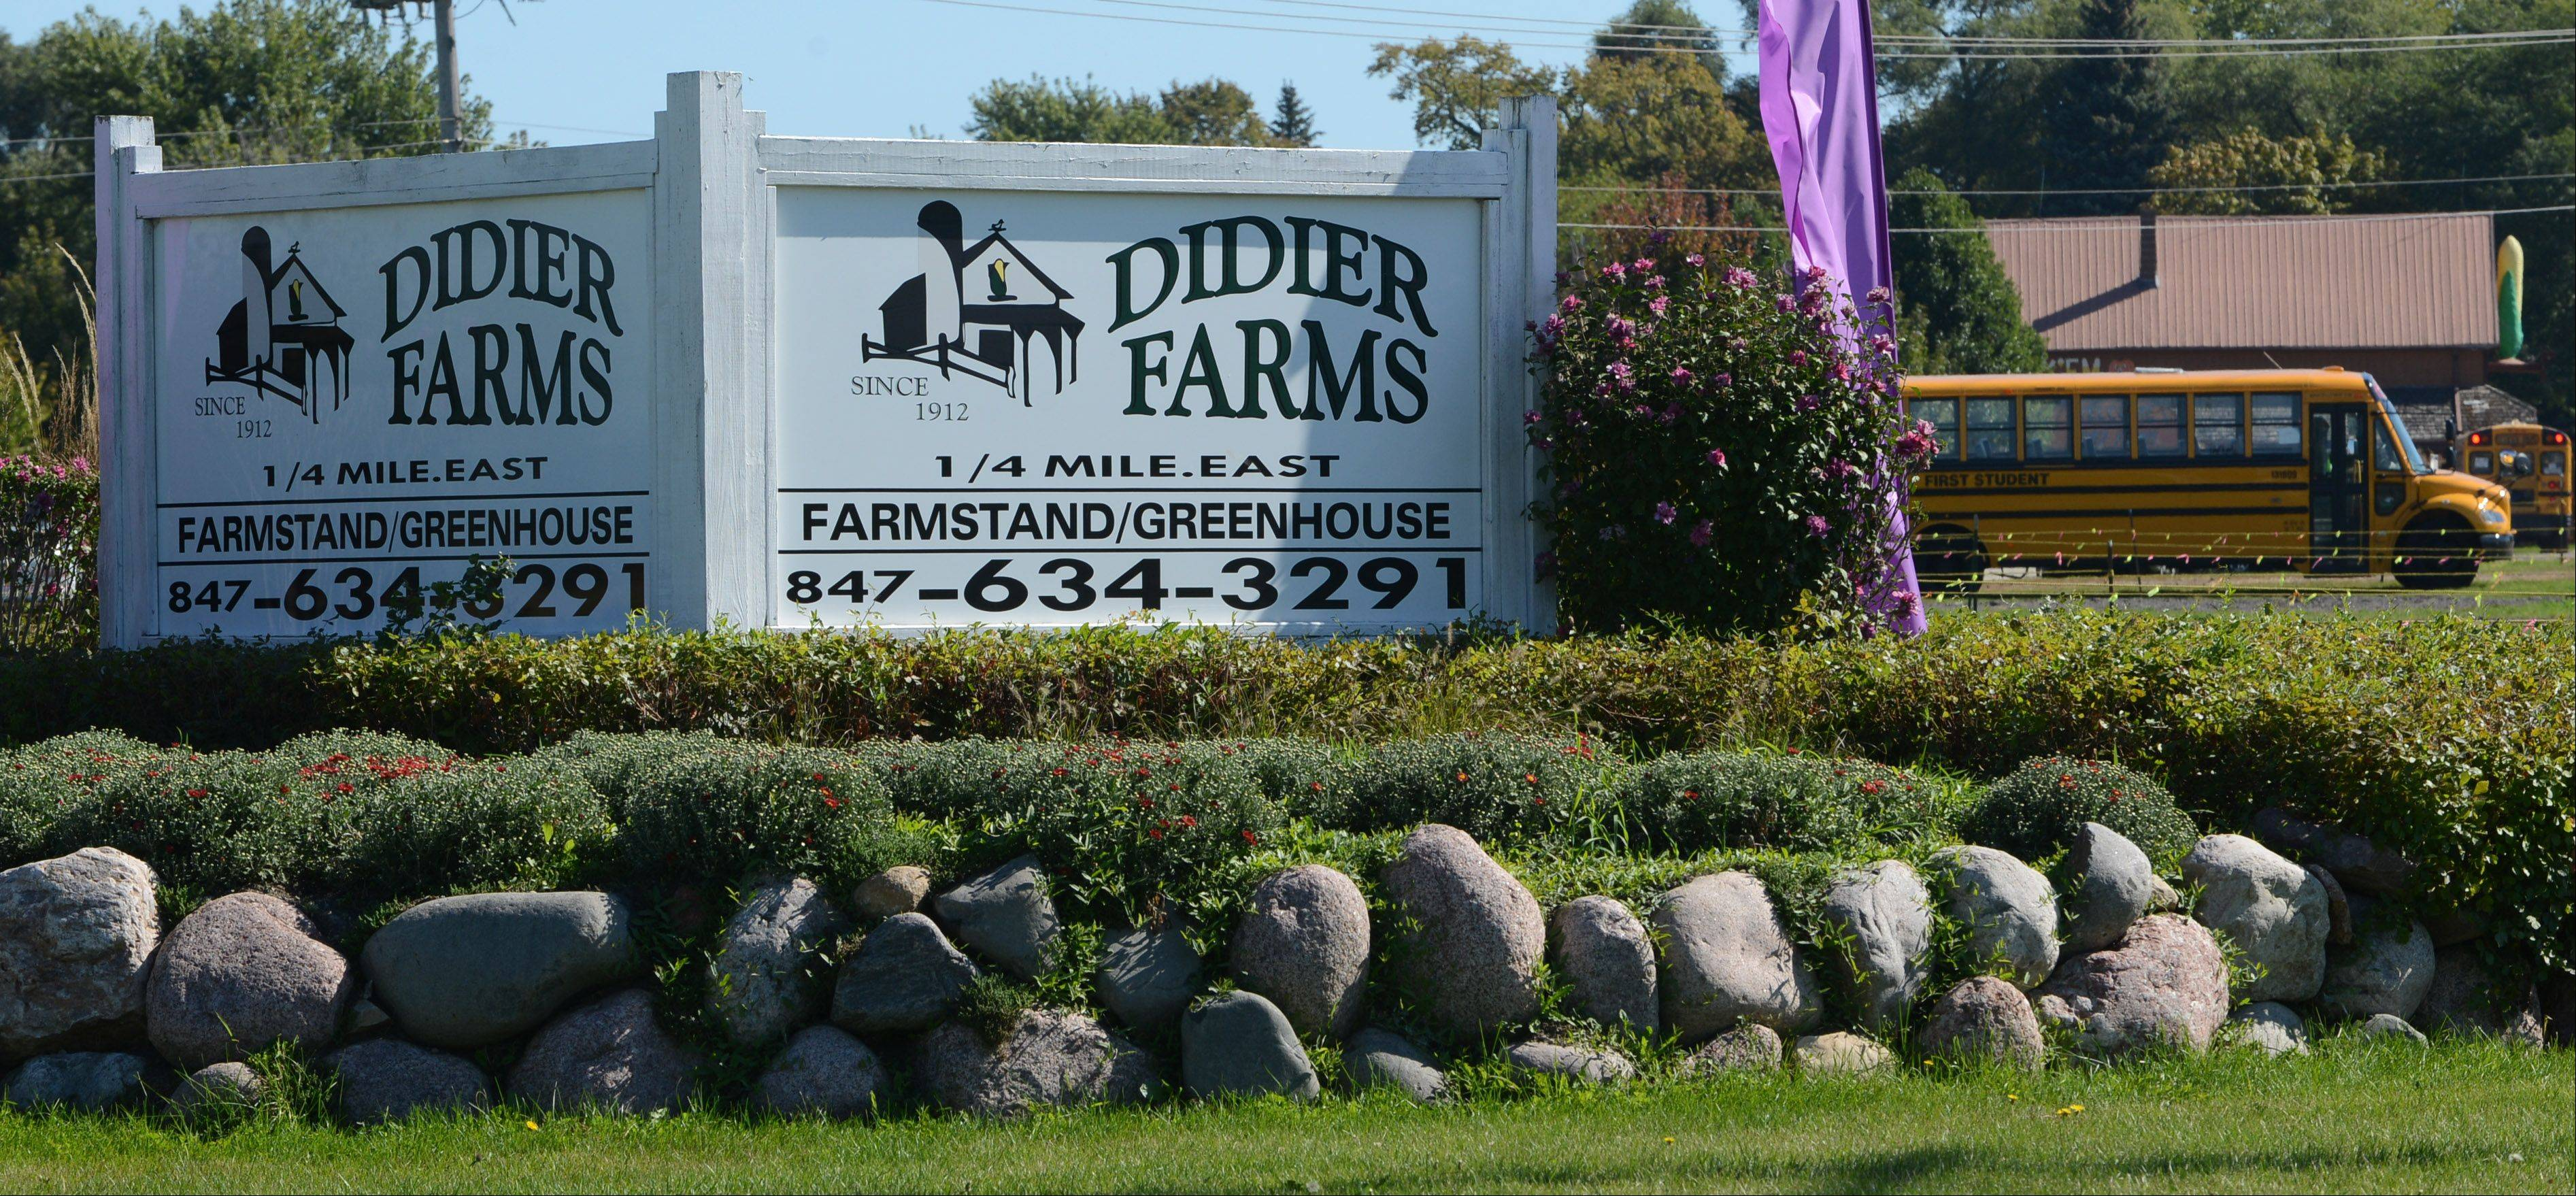 Buffalo Grove opposes Army Corps plan for Didier Farms